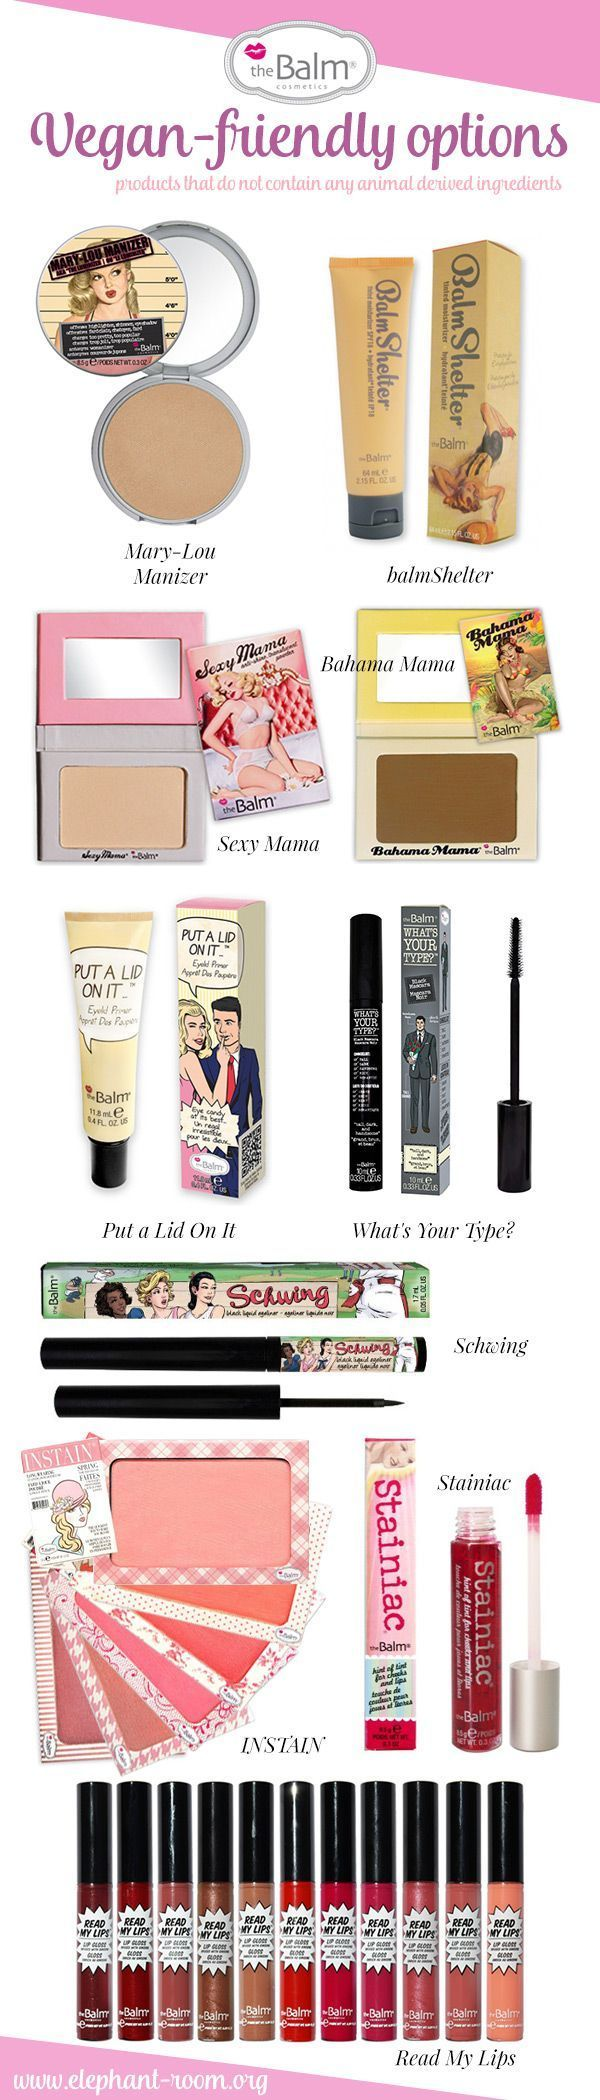 A list of theBalm's vegan products: Mary-Lou Manizer, Sexy Mama Anti Shine Translucent Powder, Bahama Mama Bronzer, Read My Lips Lip Glosses, What's Your Type Mascaras, Schwing Eyeliner, INSTAIN blushes, balmShelter tinted moisturizer, Put a Lid On It, and Stainiac.